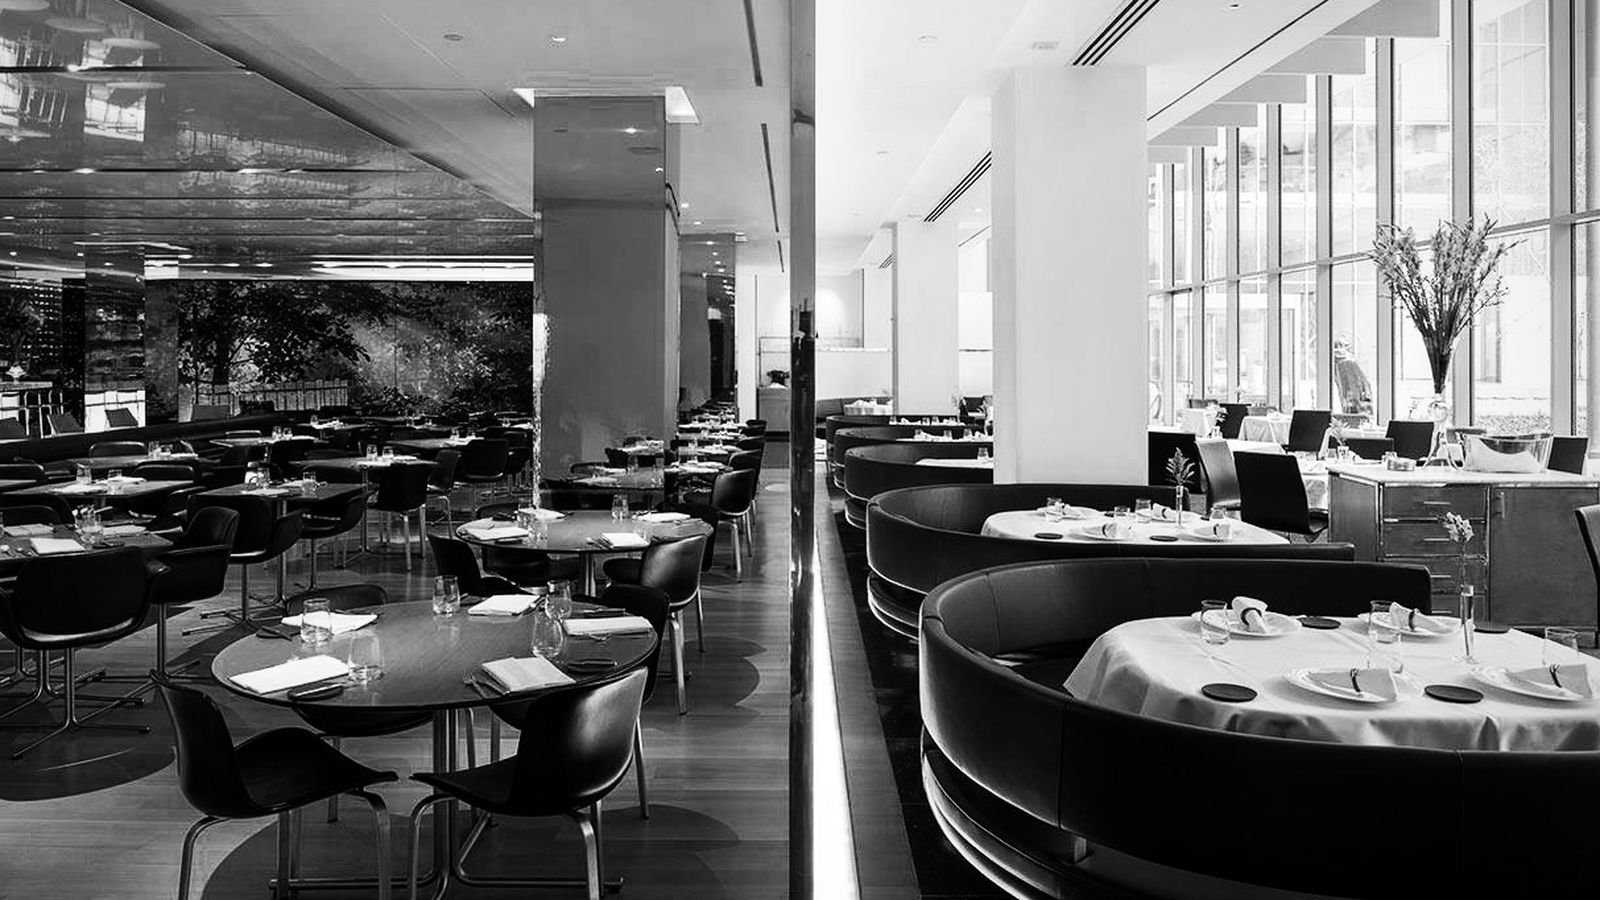 Danny meyer is eliminating all tipping at his restaurants eater ny - Moderne cusine ...